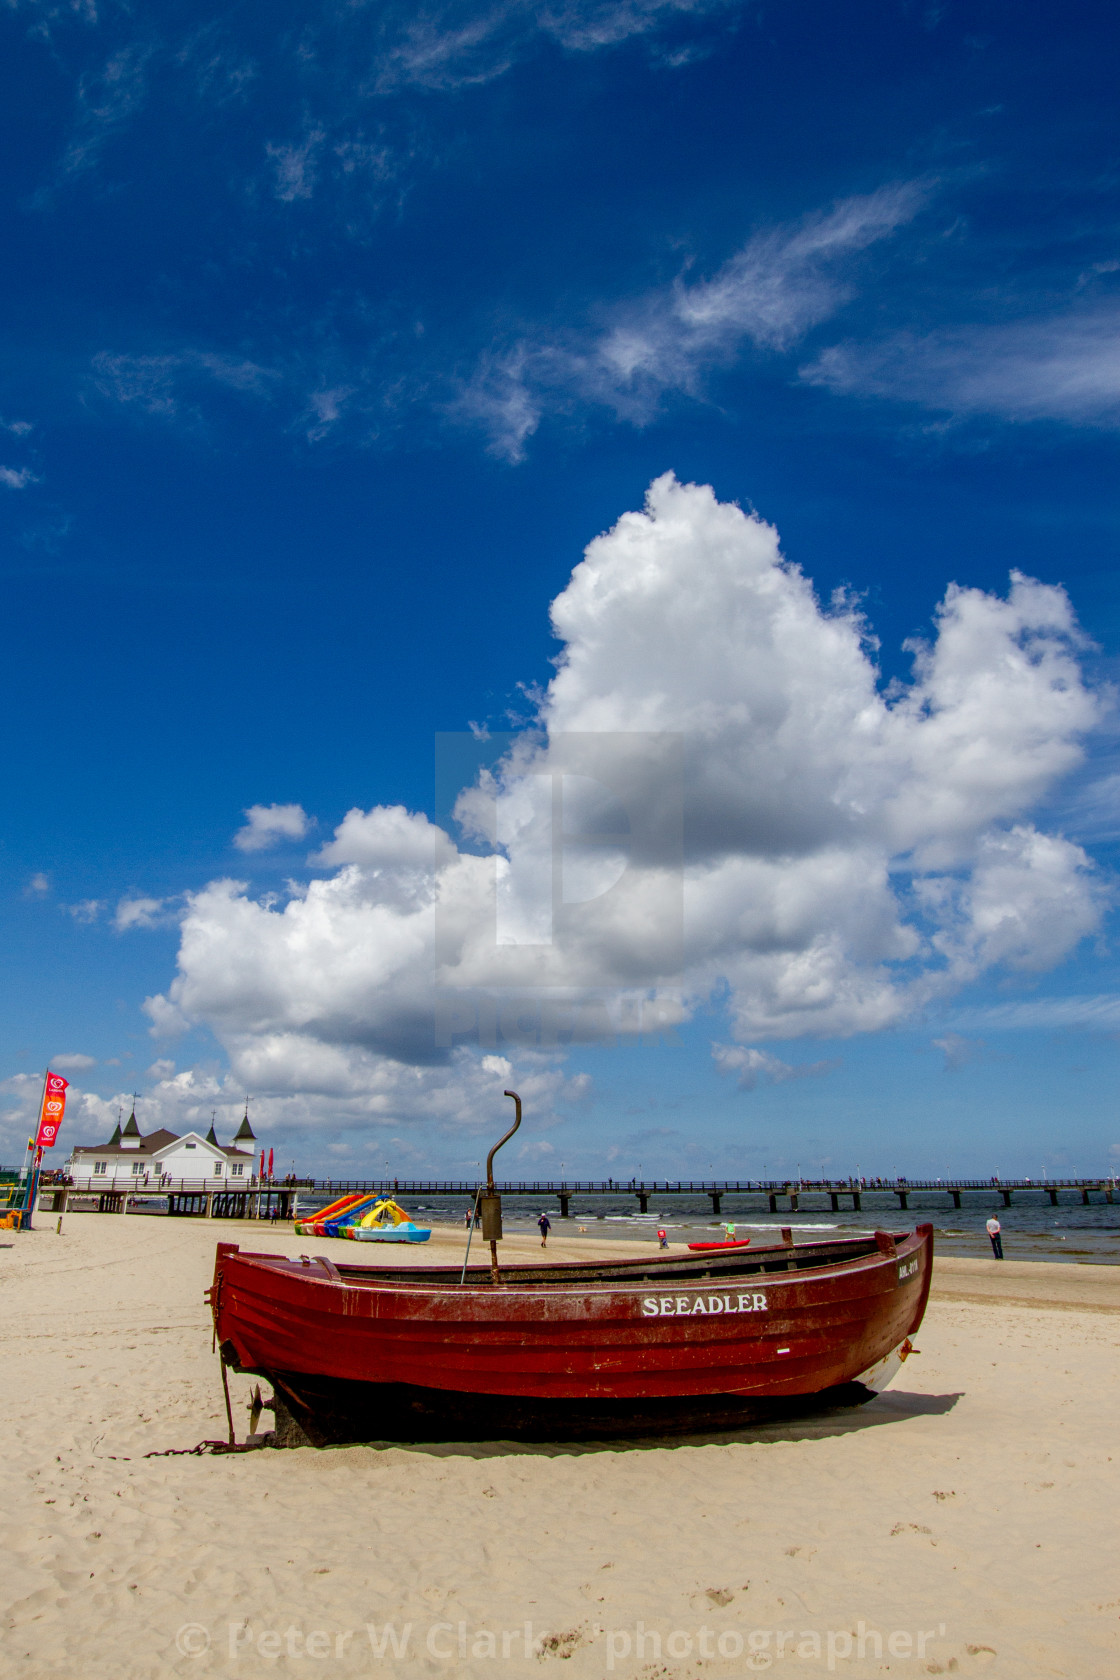 """Photographs of Ahlbeck a Seaside Resort on the Baltic Sea Coast, Germany. The Beach on a Sunny Day. Fishing Boat Seeadler to the Forground. Pier and Pavillion in the Background."" stock image"